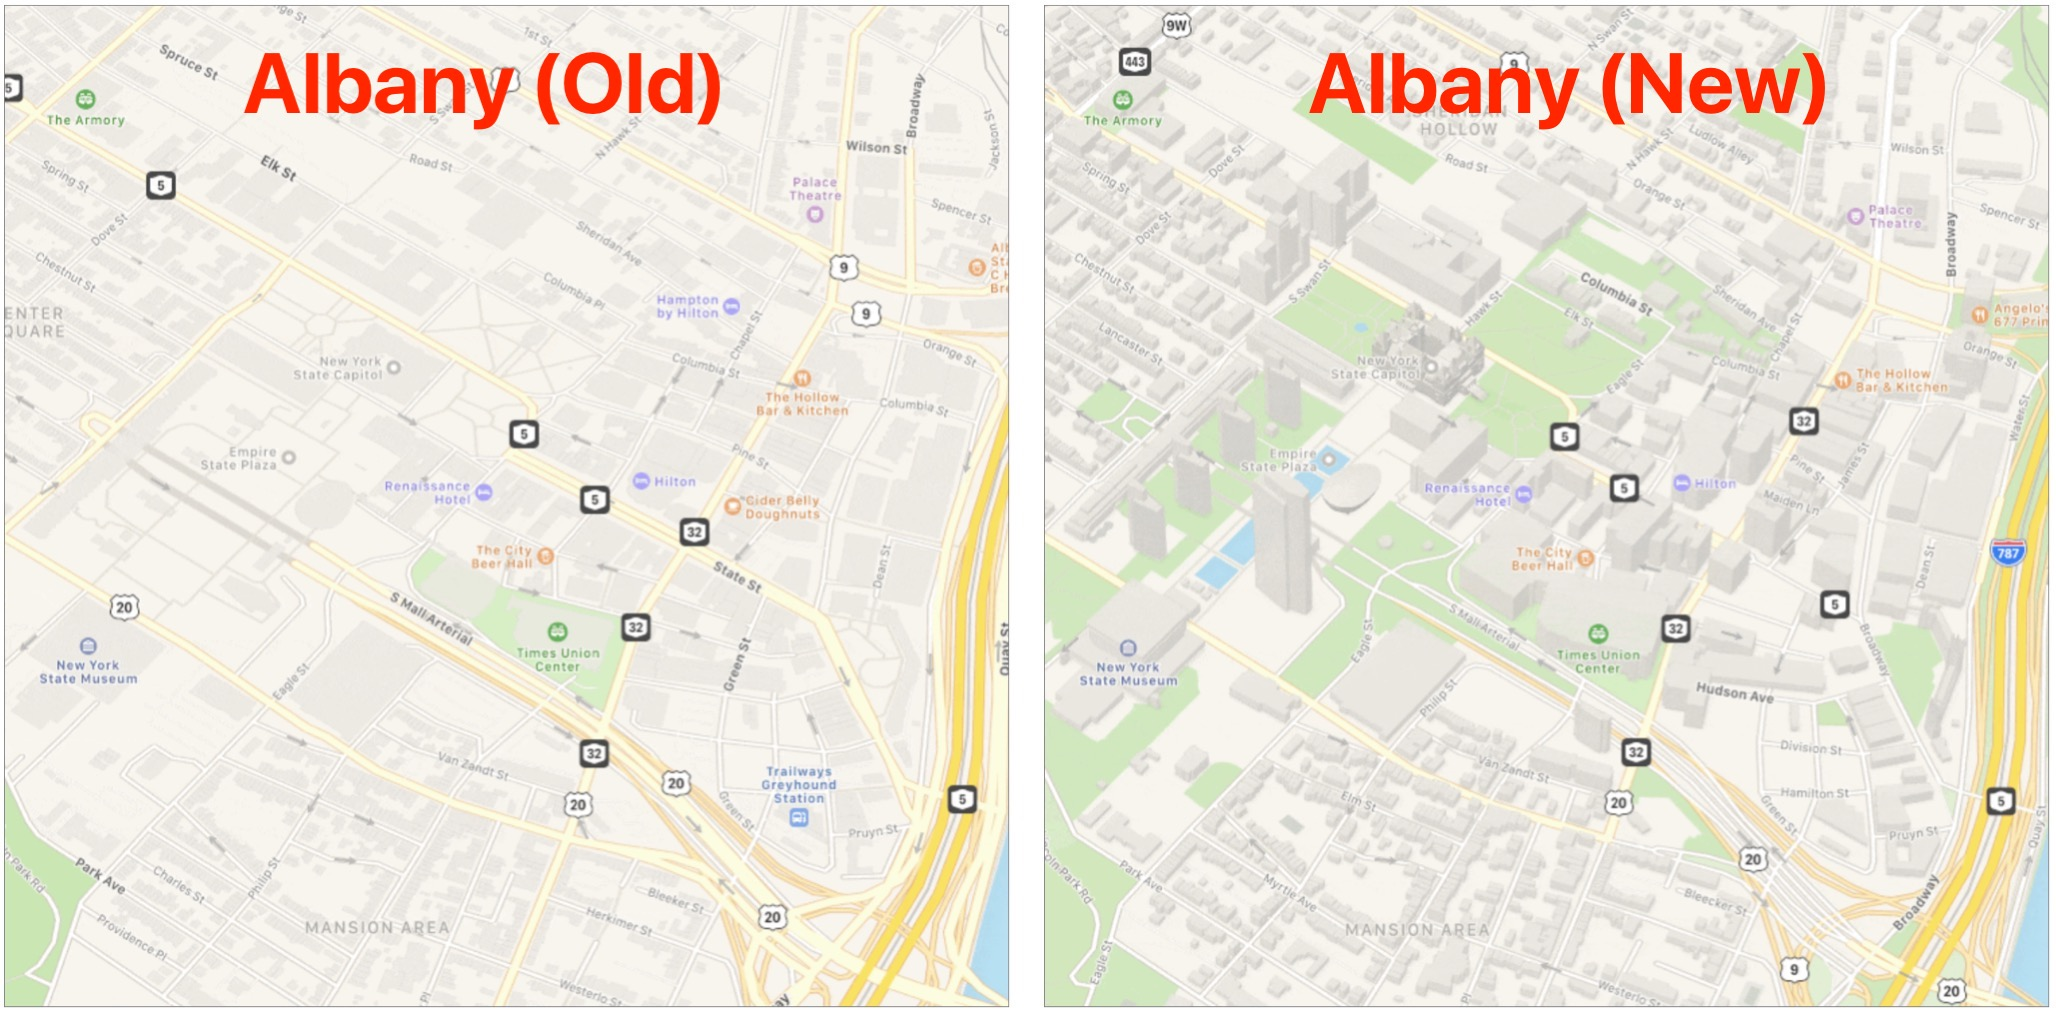 Comparing Apple's Old and New Map Data - TidBITS on data steward, data migration, physical map, data management, metadata map, code map, systems map, semantic integration, statistical map, data dictionary, information architecture map, road map, business map, address map, application map, master data management, messaging map, data profiling, optical map, text map, information integration, political map, the world region map, data cleansing, enterprise information integration, property map, data integration, data warehouse, value map, process map, data custodian, development map, kriging map,